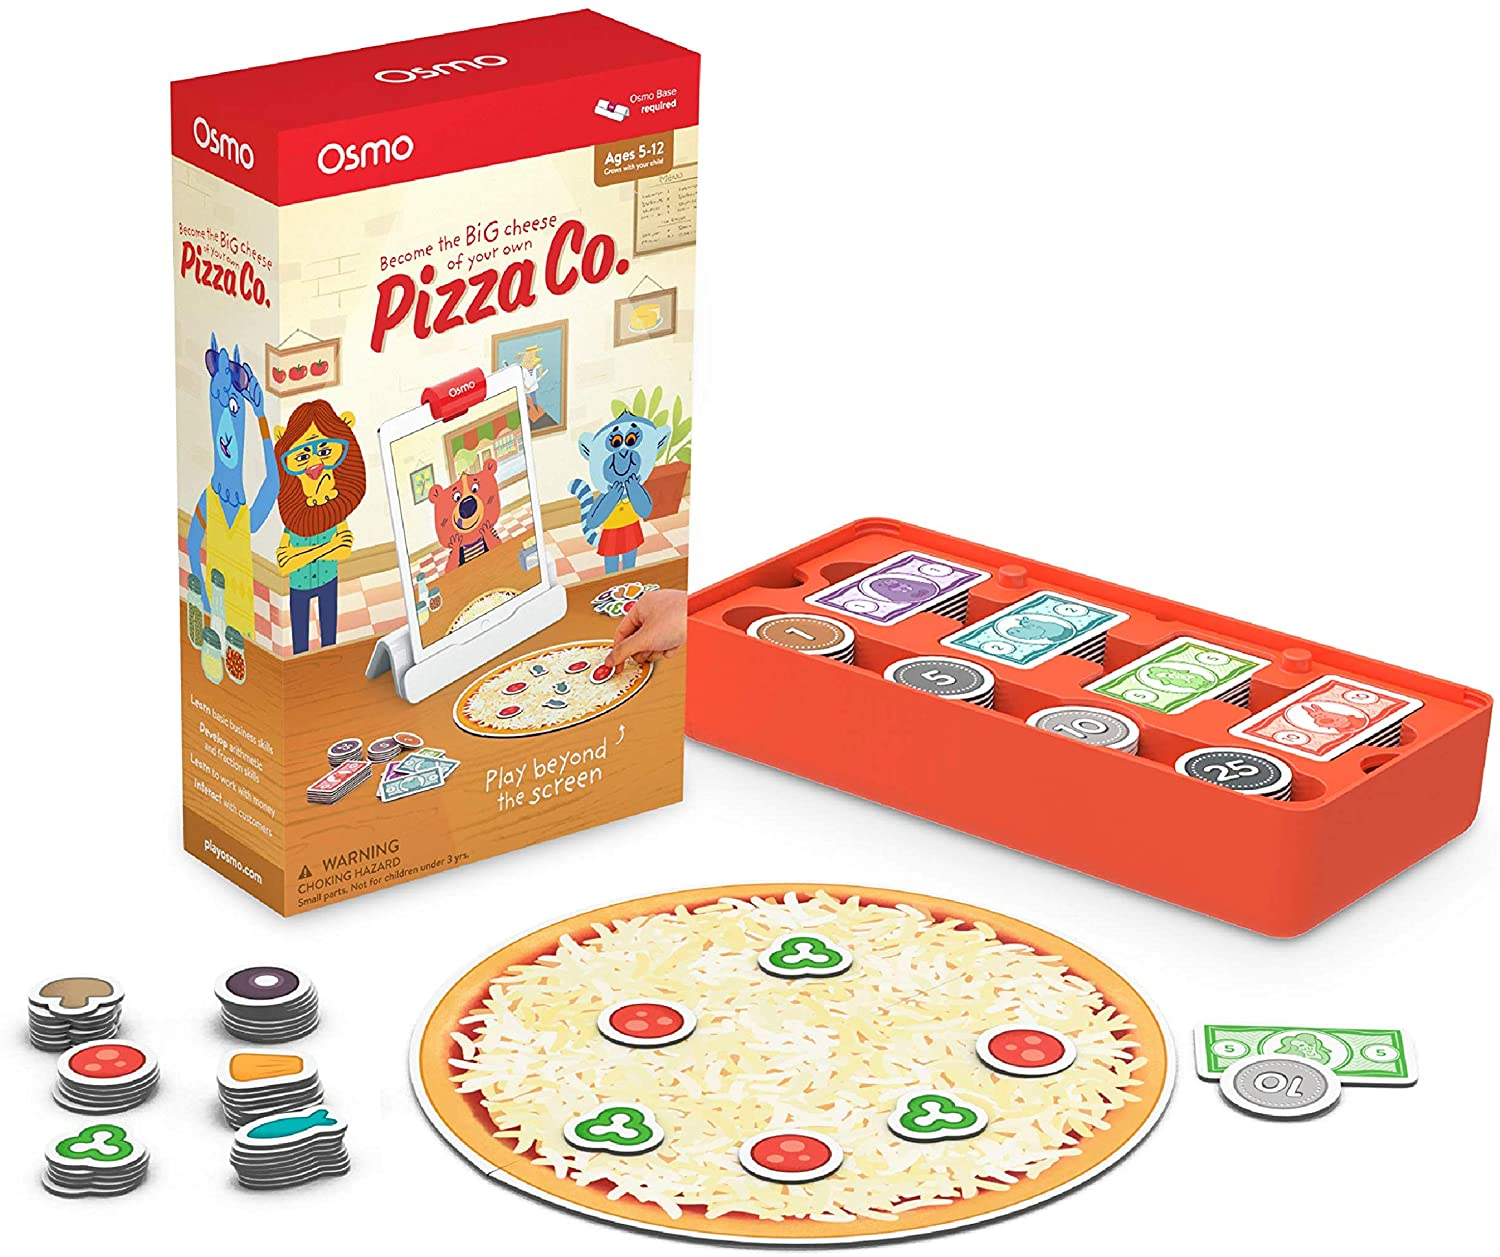 Geek Daily Deals 082420 osmo pizza co